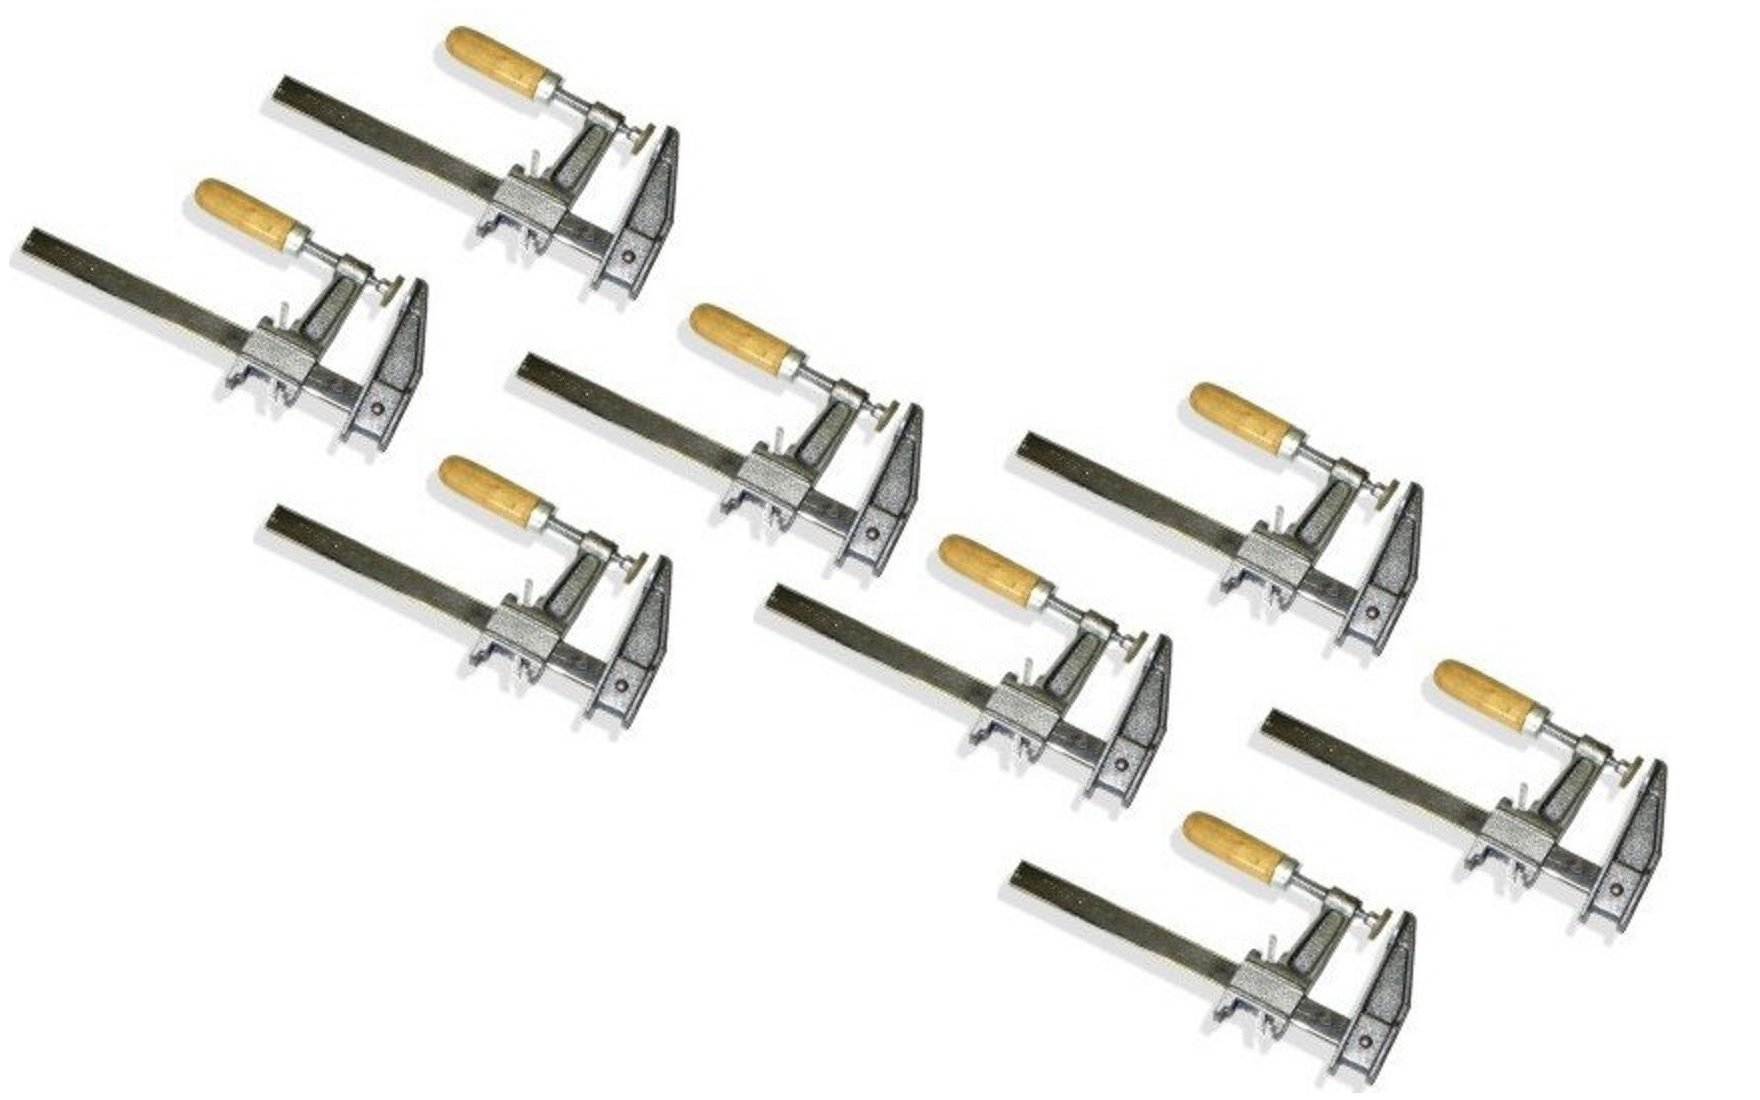 Set of 8 12'' Inch Bar Clamps Heavy Duty Woodworking Wood Carpenter Tools